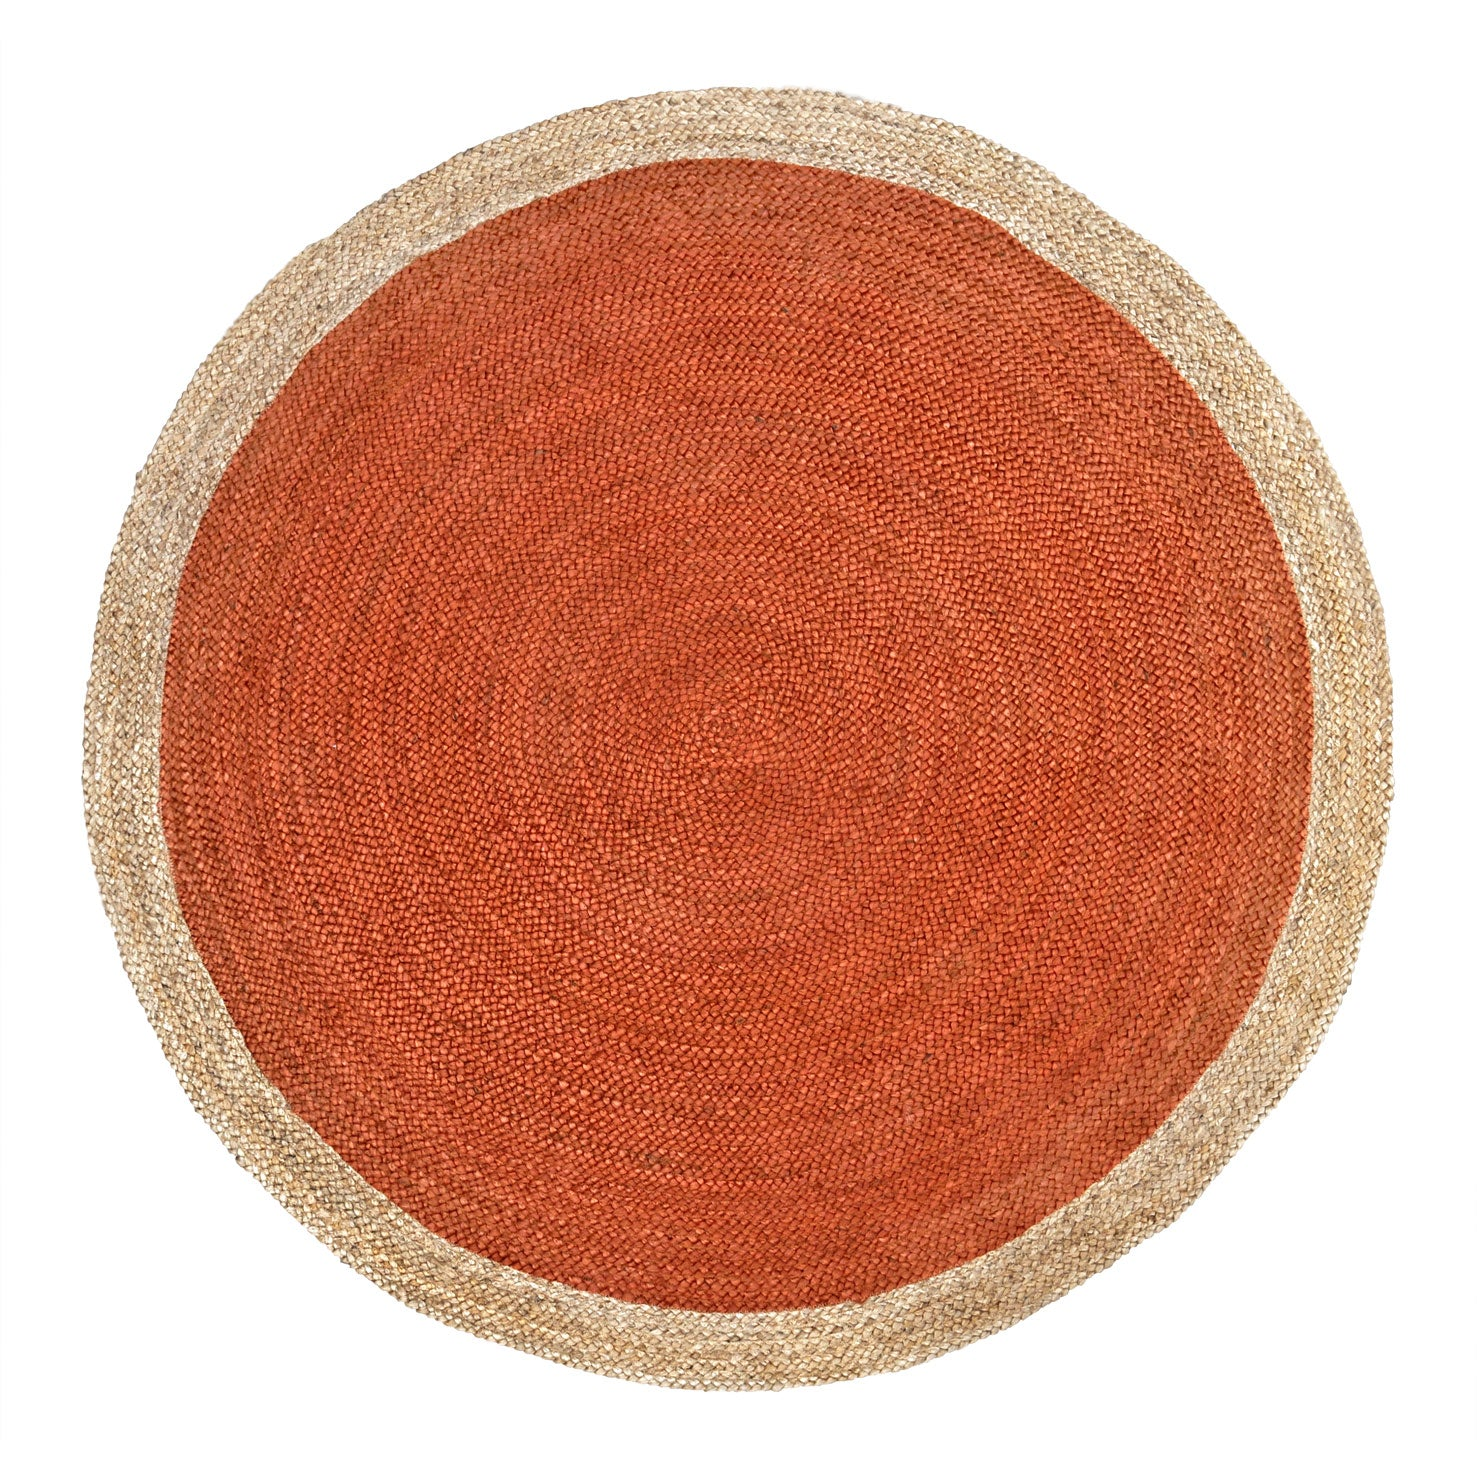 Oculus Handwoven Round Jute Rug (Natural/Orange)